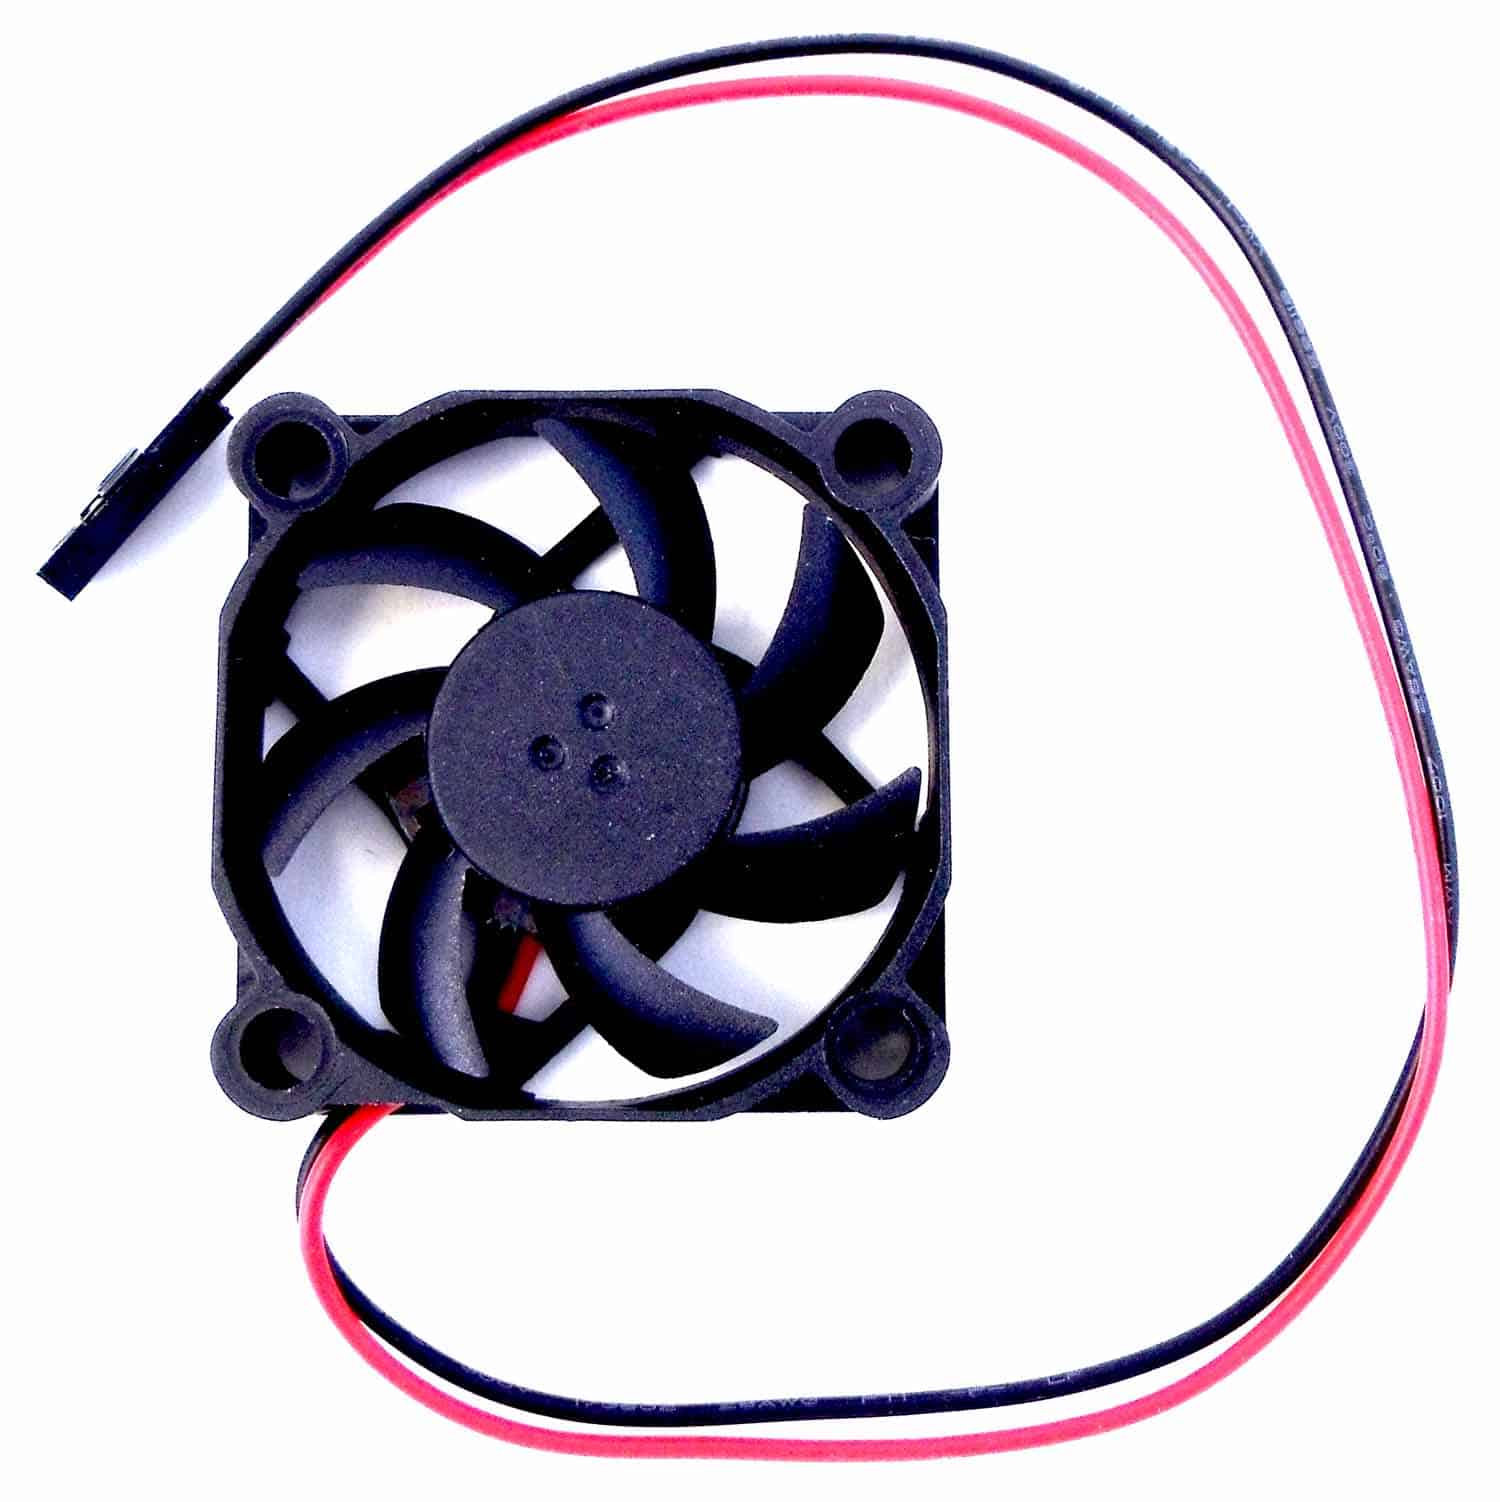 FAN95 - Galaxy Replacement Fan For The DX95T2